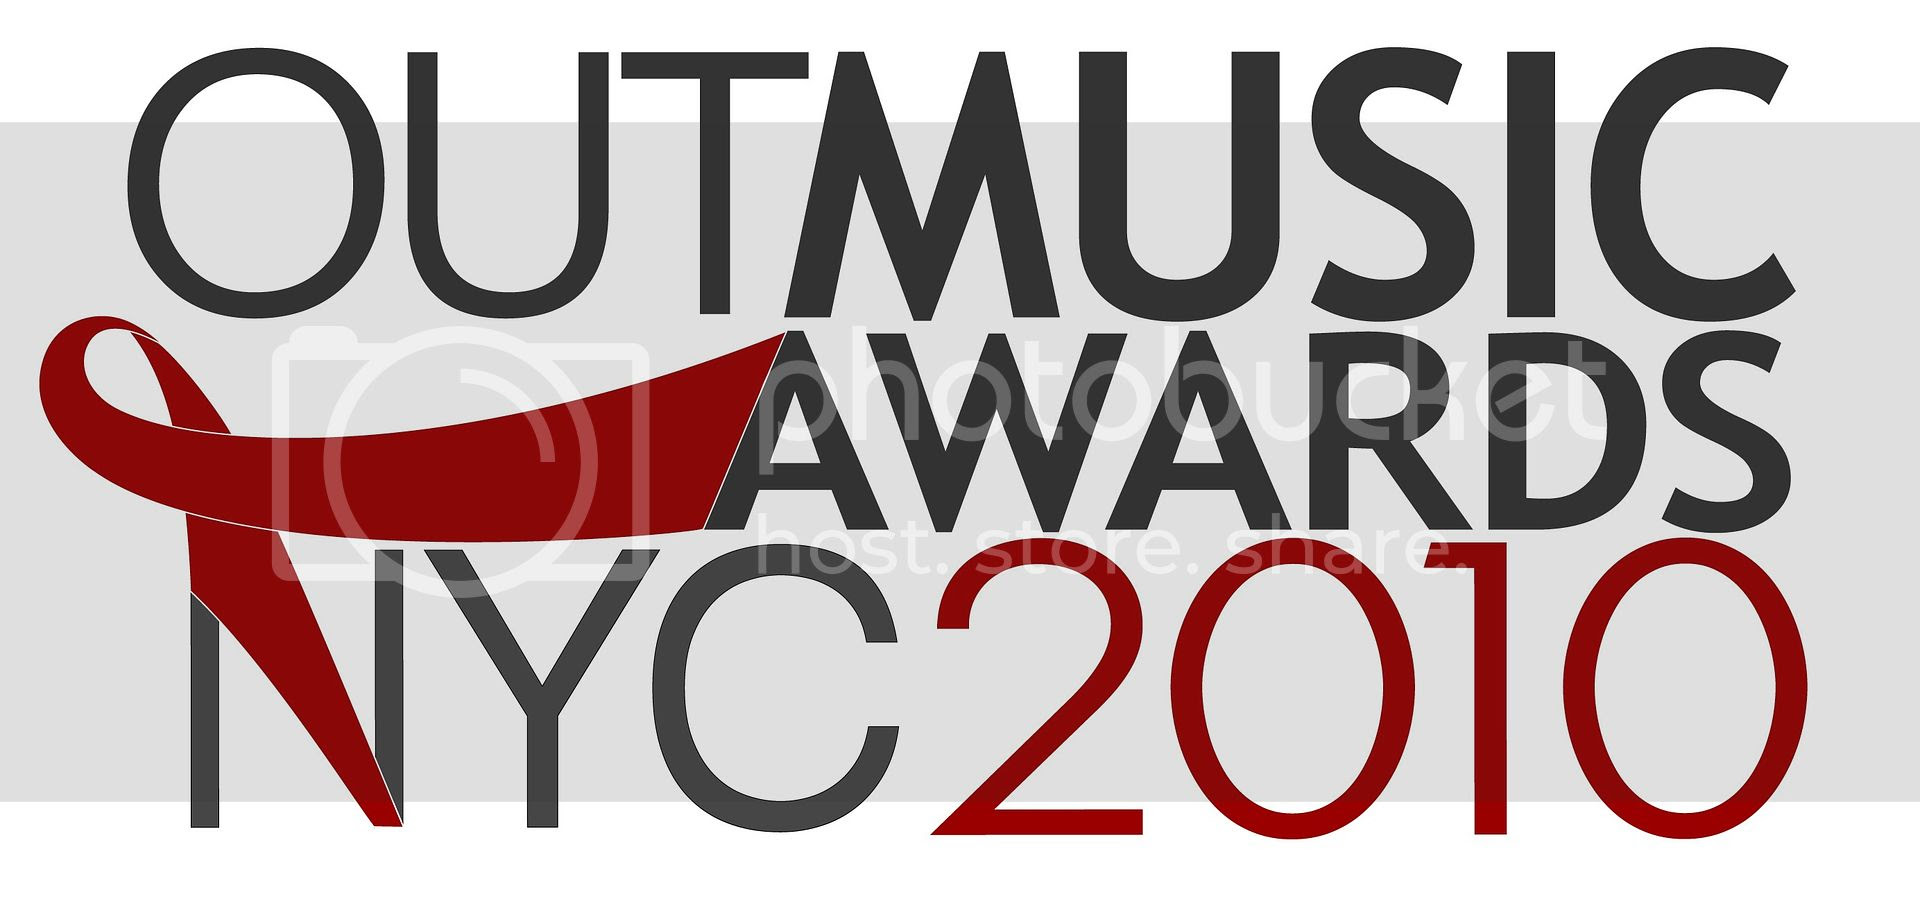 OUTMusic Awards 2010